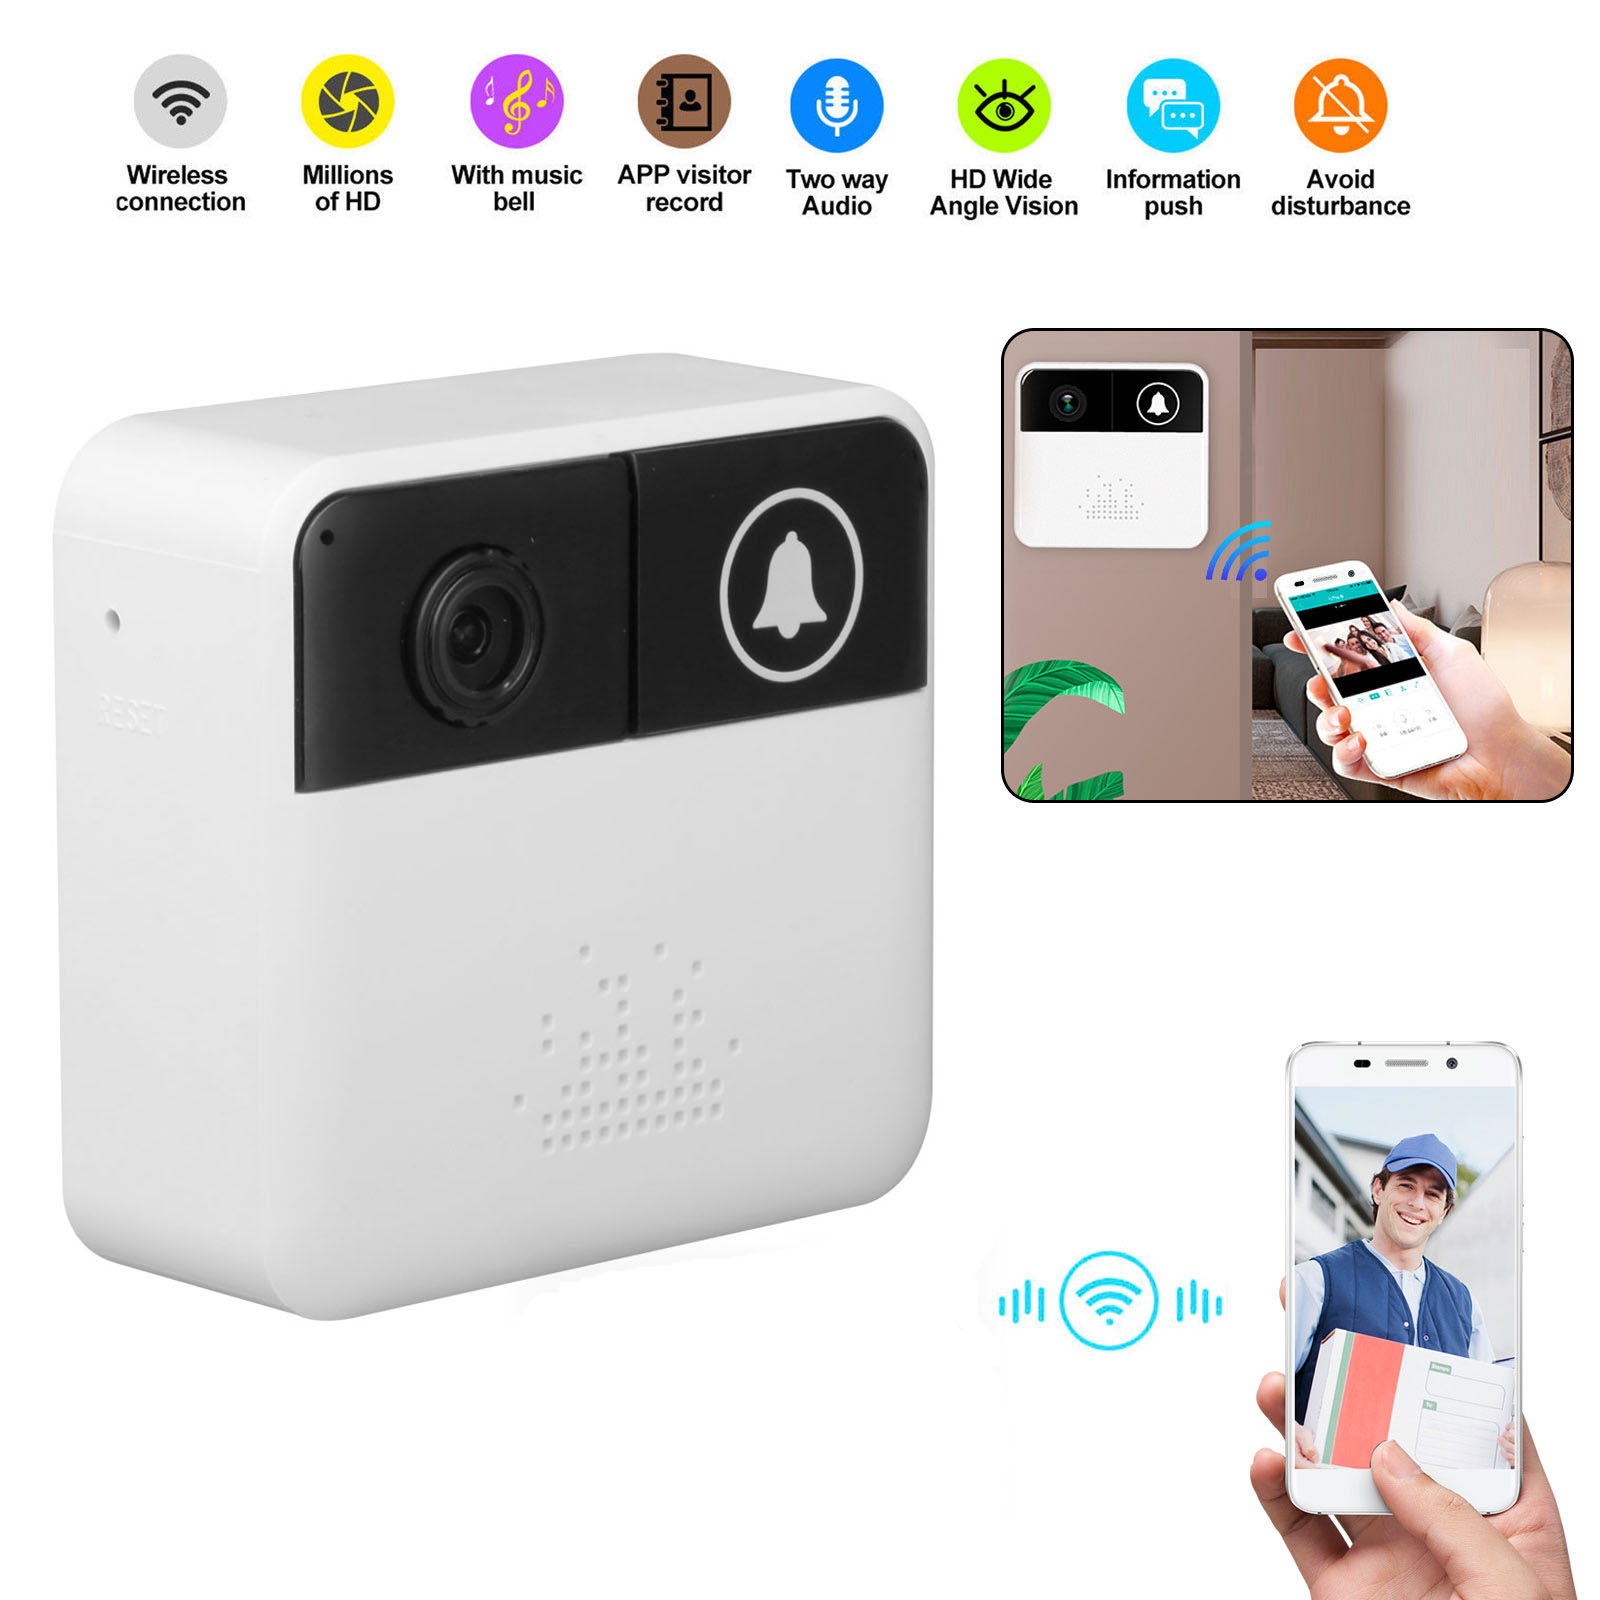 EEEKit Smart Wifi Wireless Doorbell, Professional 720P HD Door Bell Video Camera Ring Motion Detection Night Vision, Real-Time Video, Audio Chat